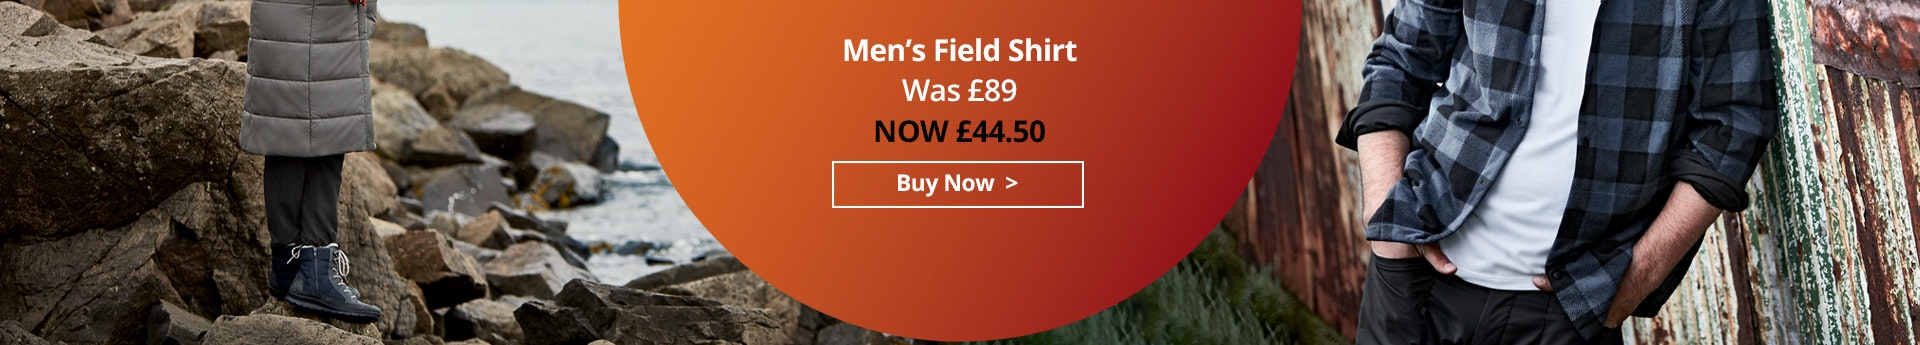 Shop Men's Field Shirt